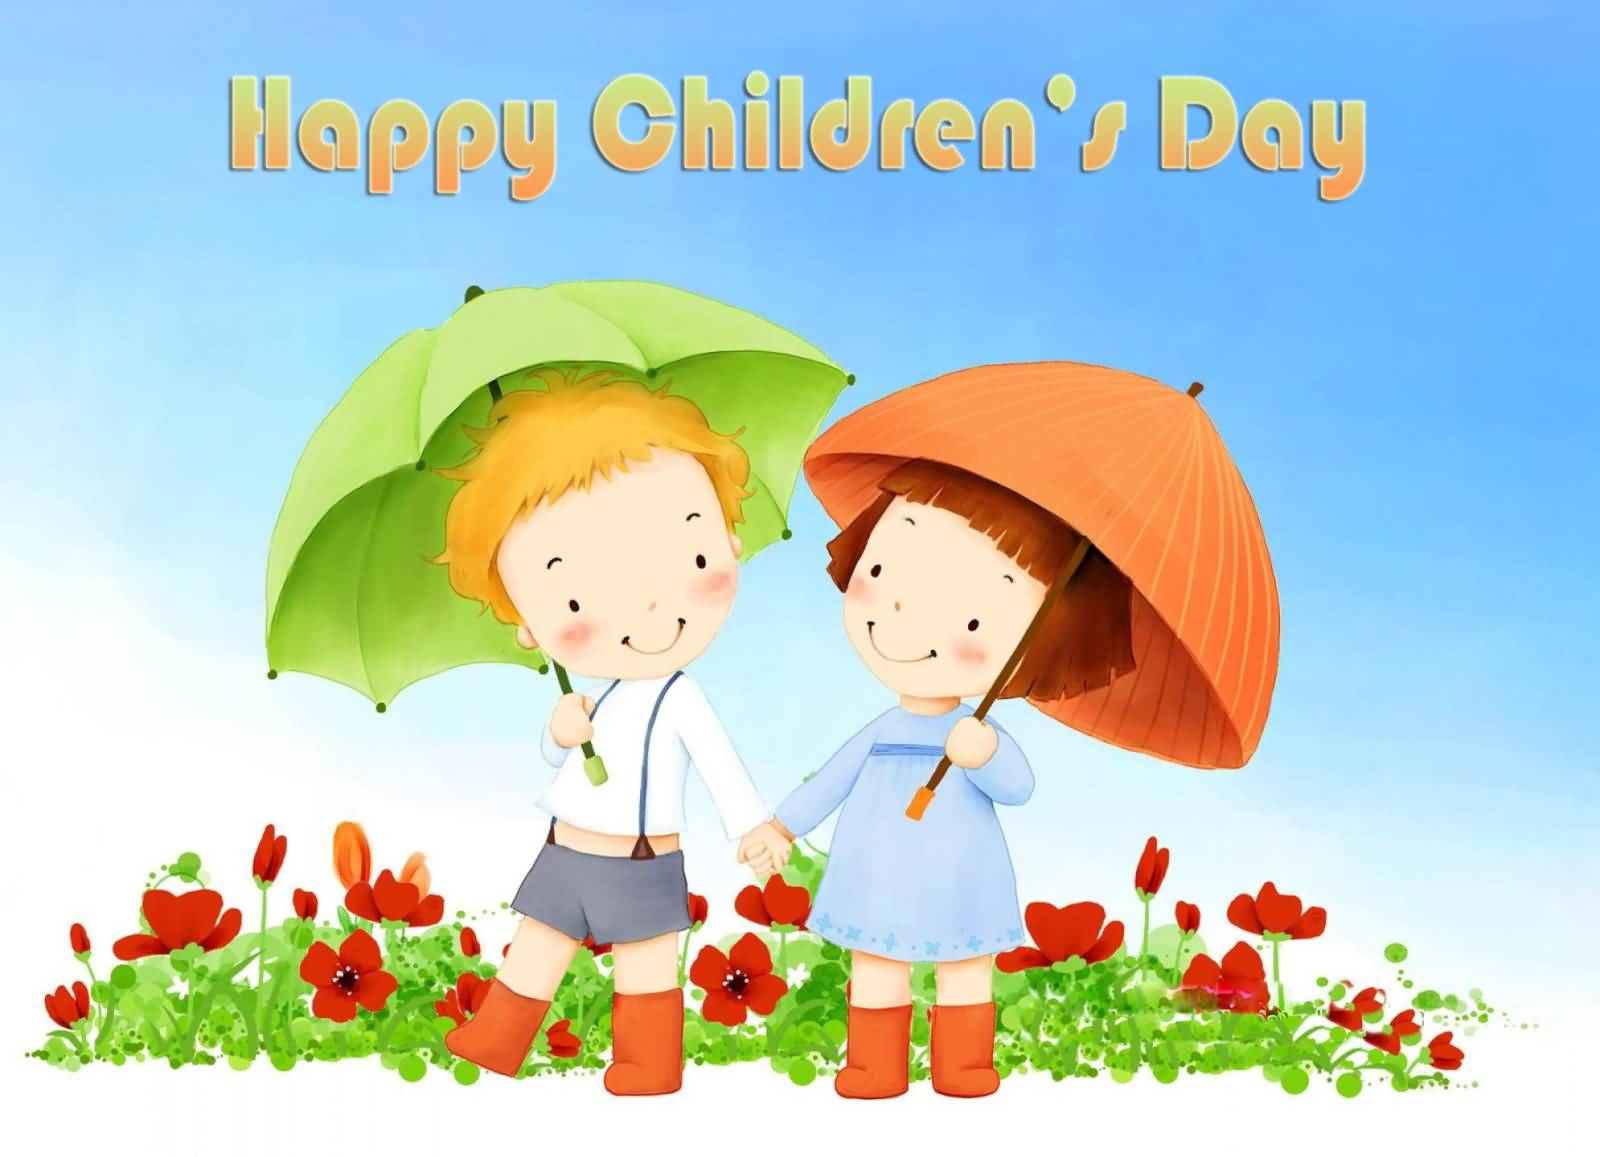 80 Most Beautiful Childrens Day Wish Pictures And Images